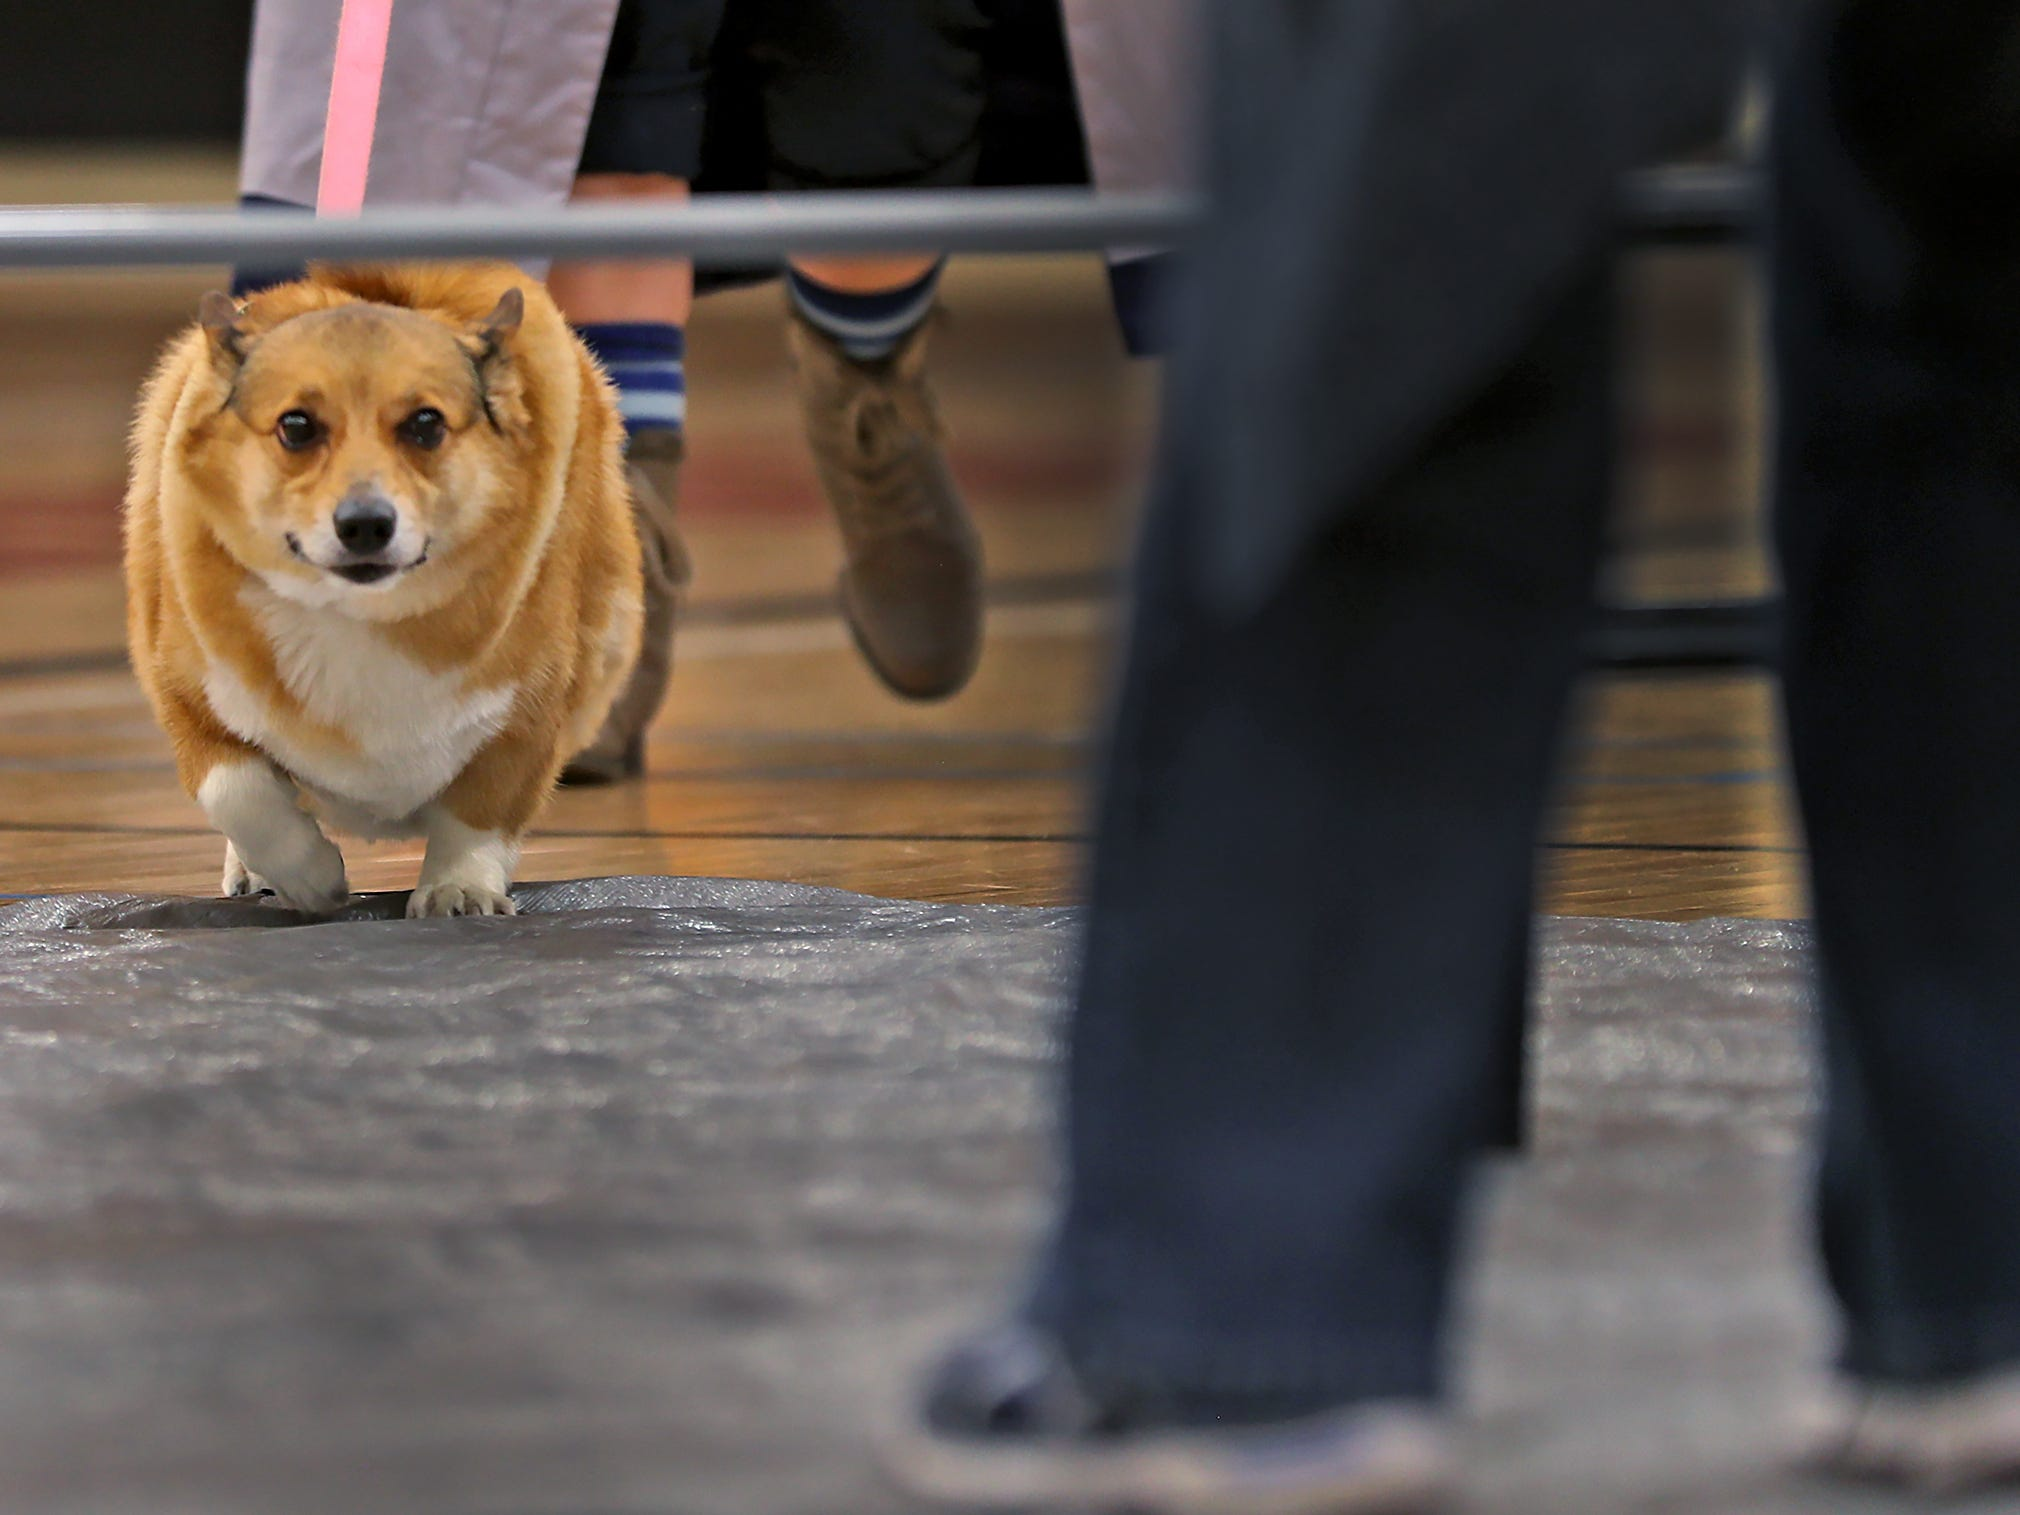 Jasmine heads under the limbo bar at the Indianapolis Corgi Limbo & Costume Contest at IUPUI, Sunday, April 14, 2019.  The event benefits children orphaned by HIV/AIDS in eSwatini, Africa.  It is presented by the Give Hope, Fight Poverty IUPUI chapter.